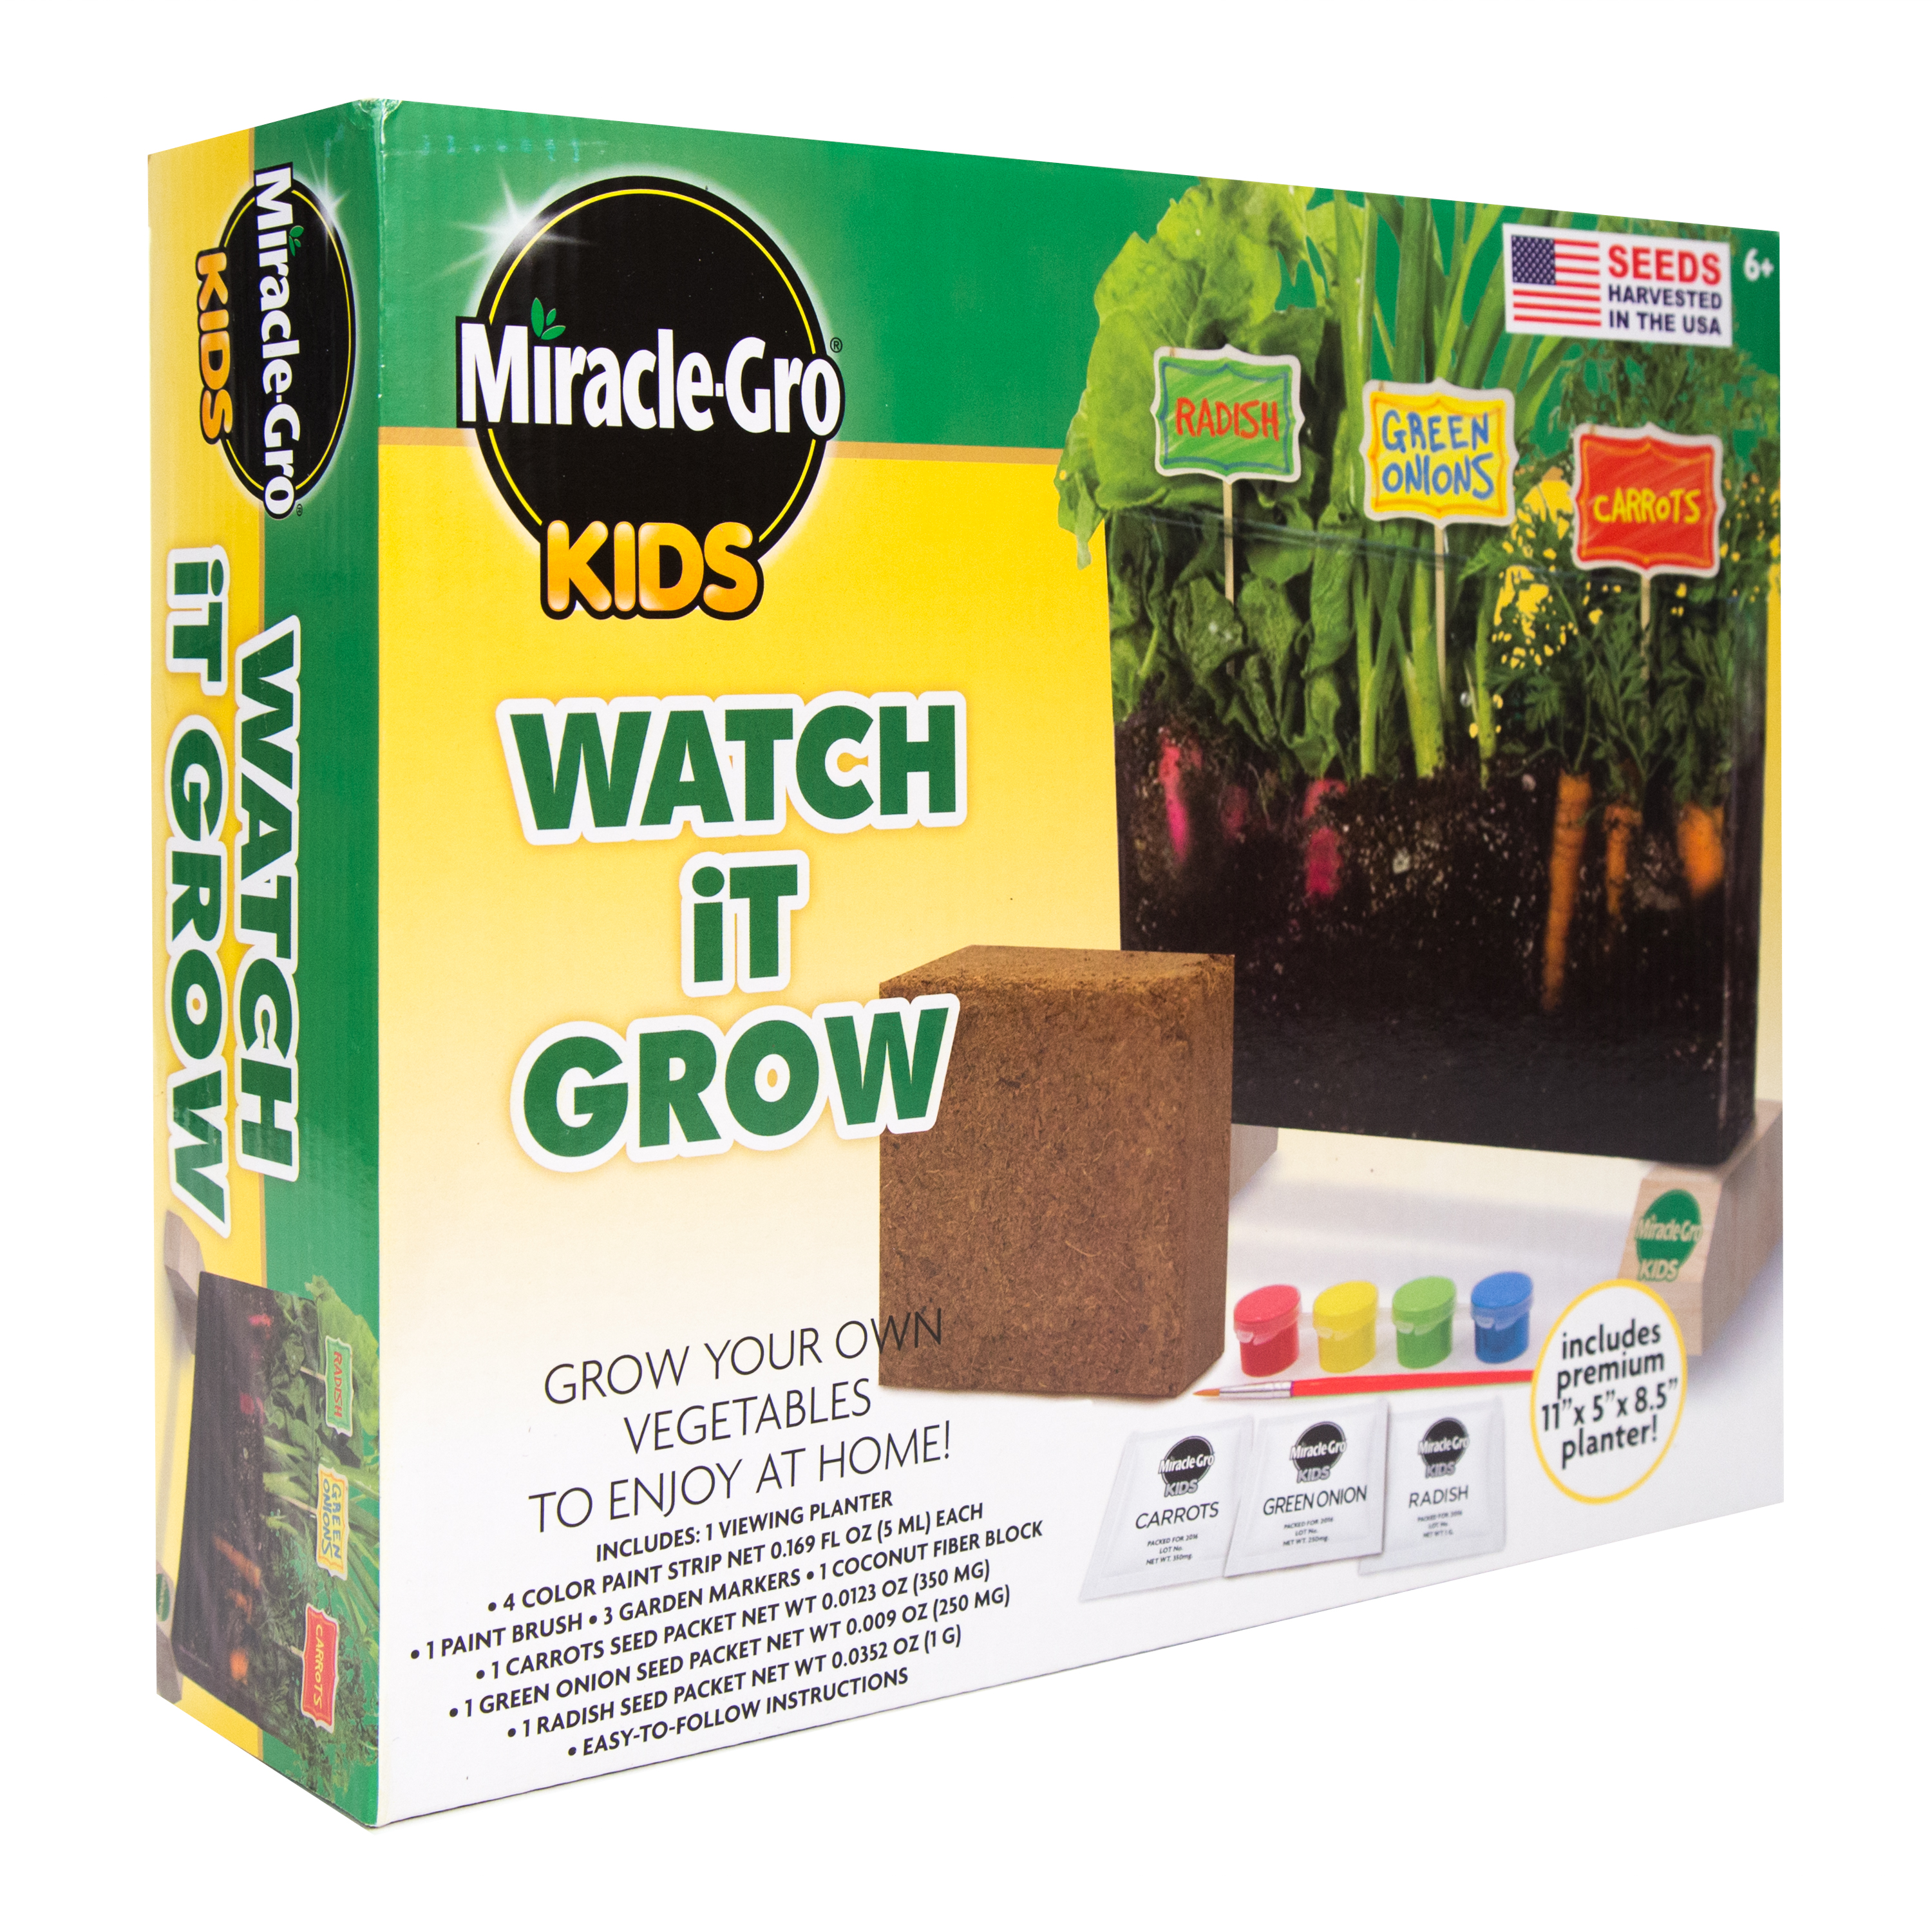 Miracle Gro Kids My First Garden Image 5 Of 5